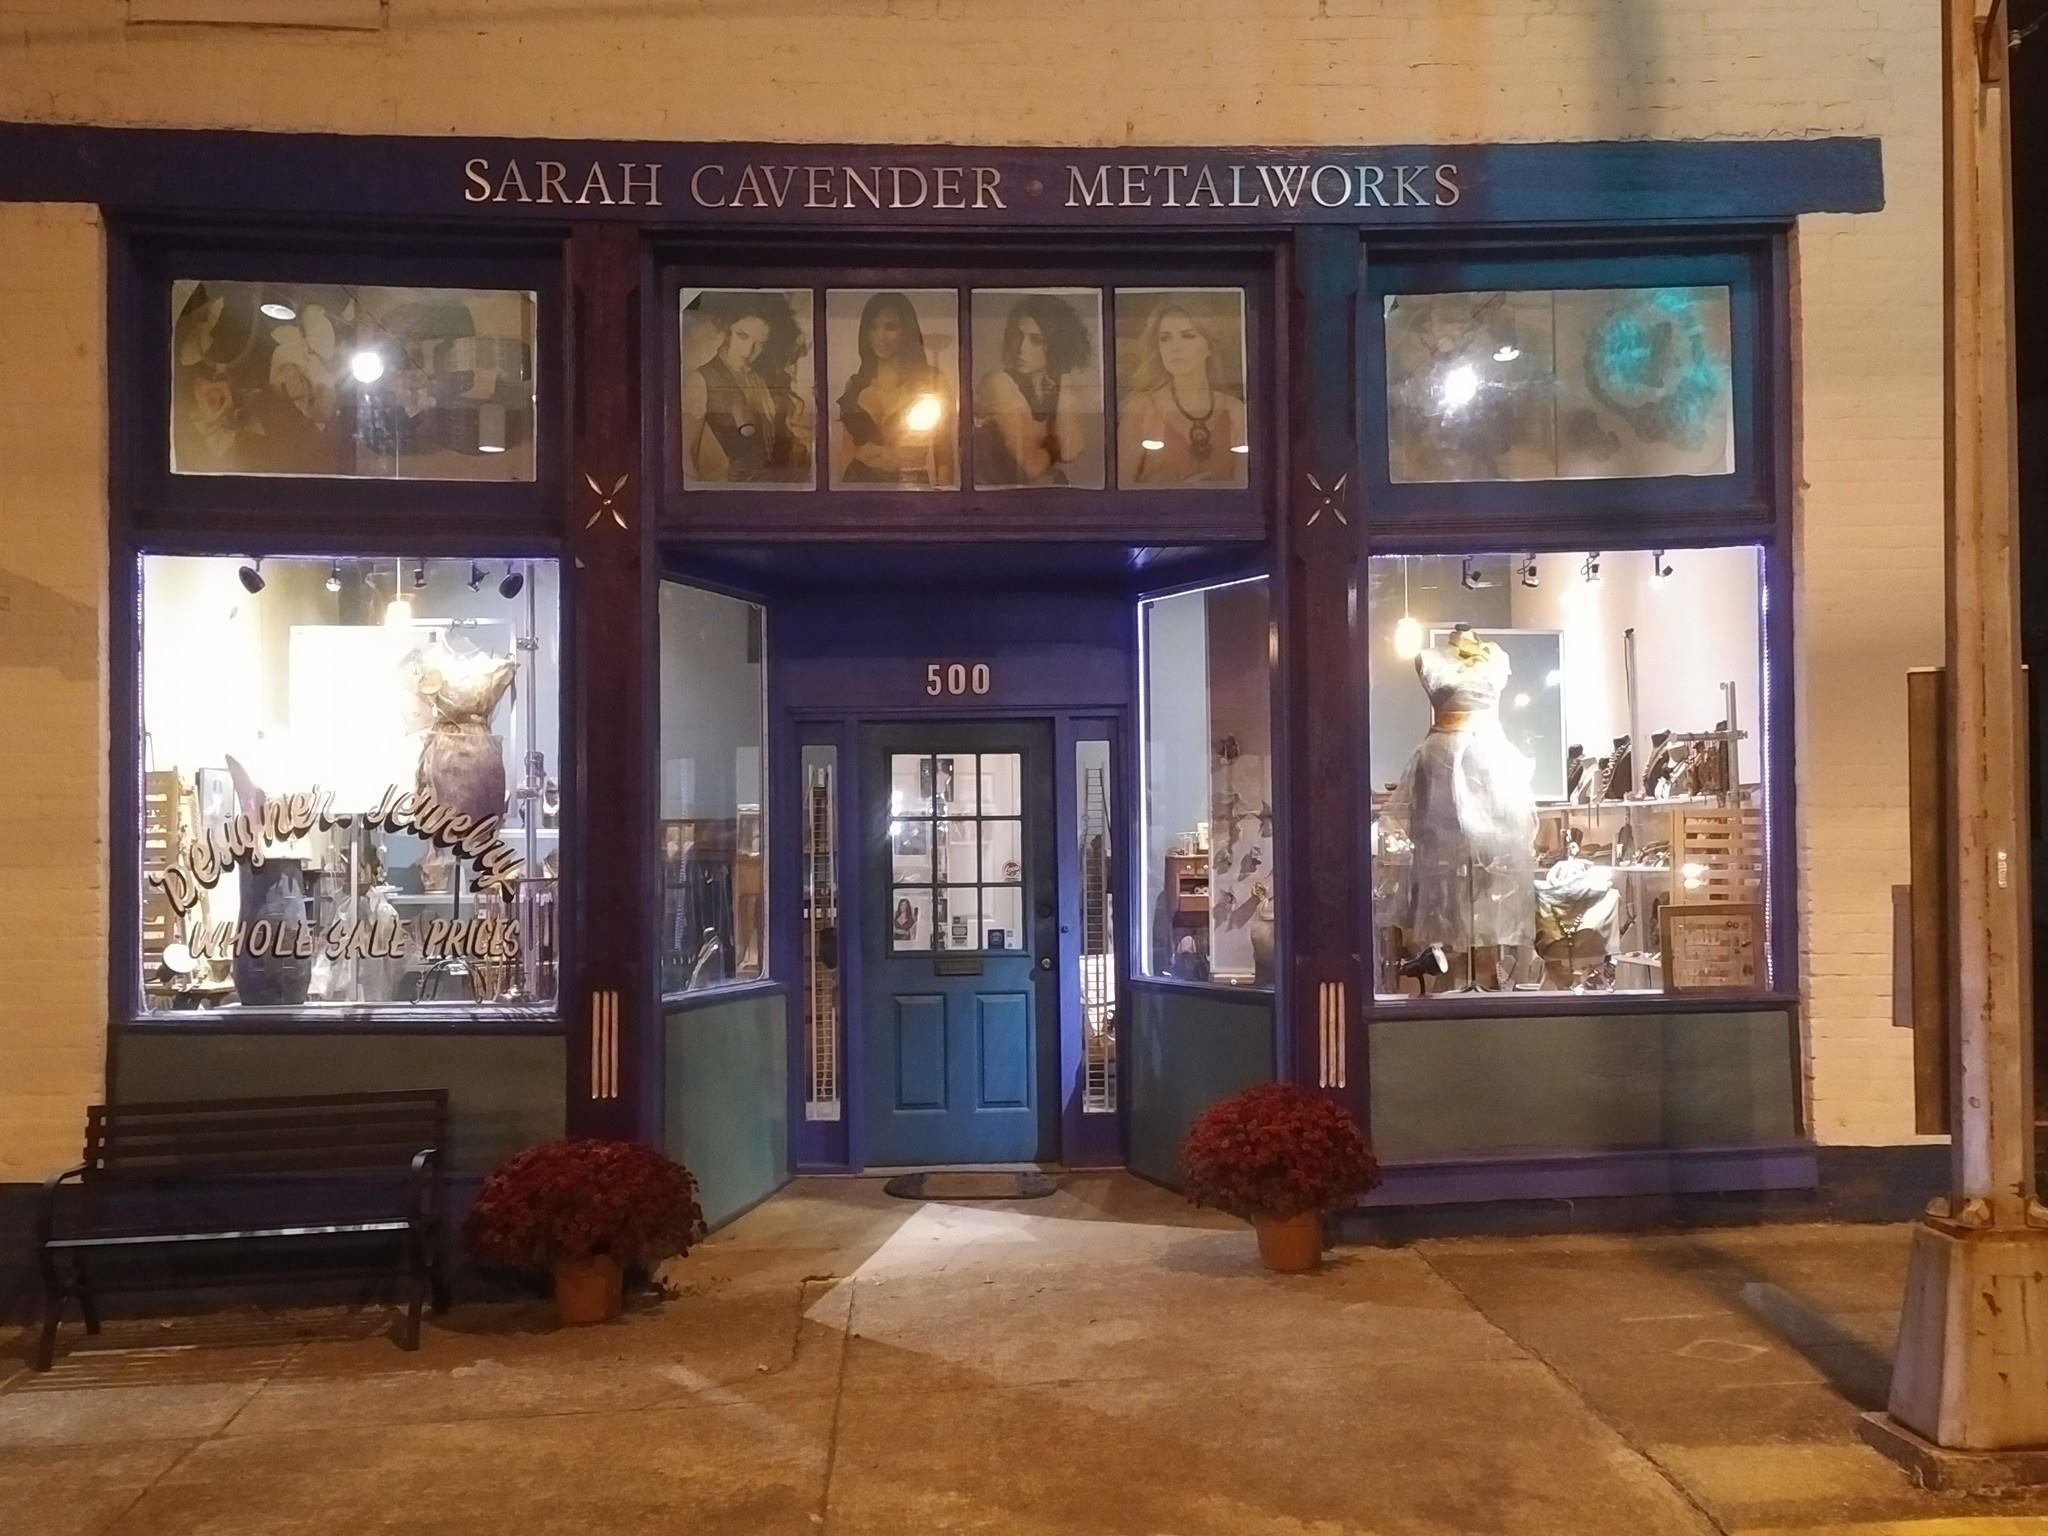 Sarah Cavender Metalworks, Maker of handcrafted metal mesh jewelry in Downtown Oxford, Alabama